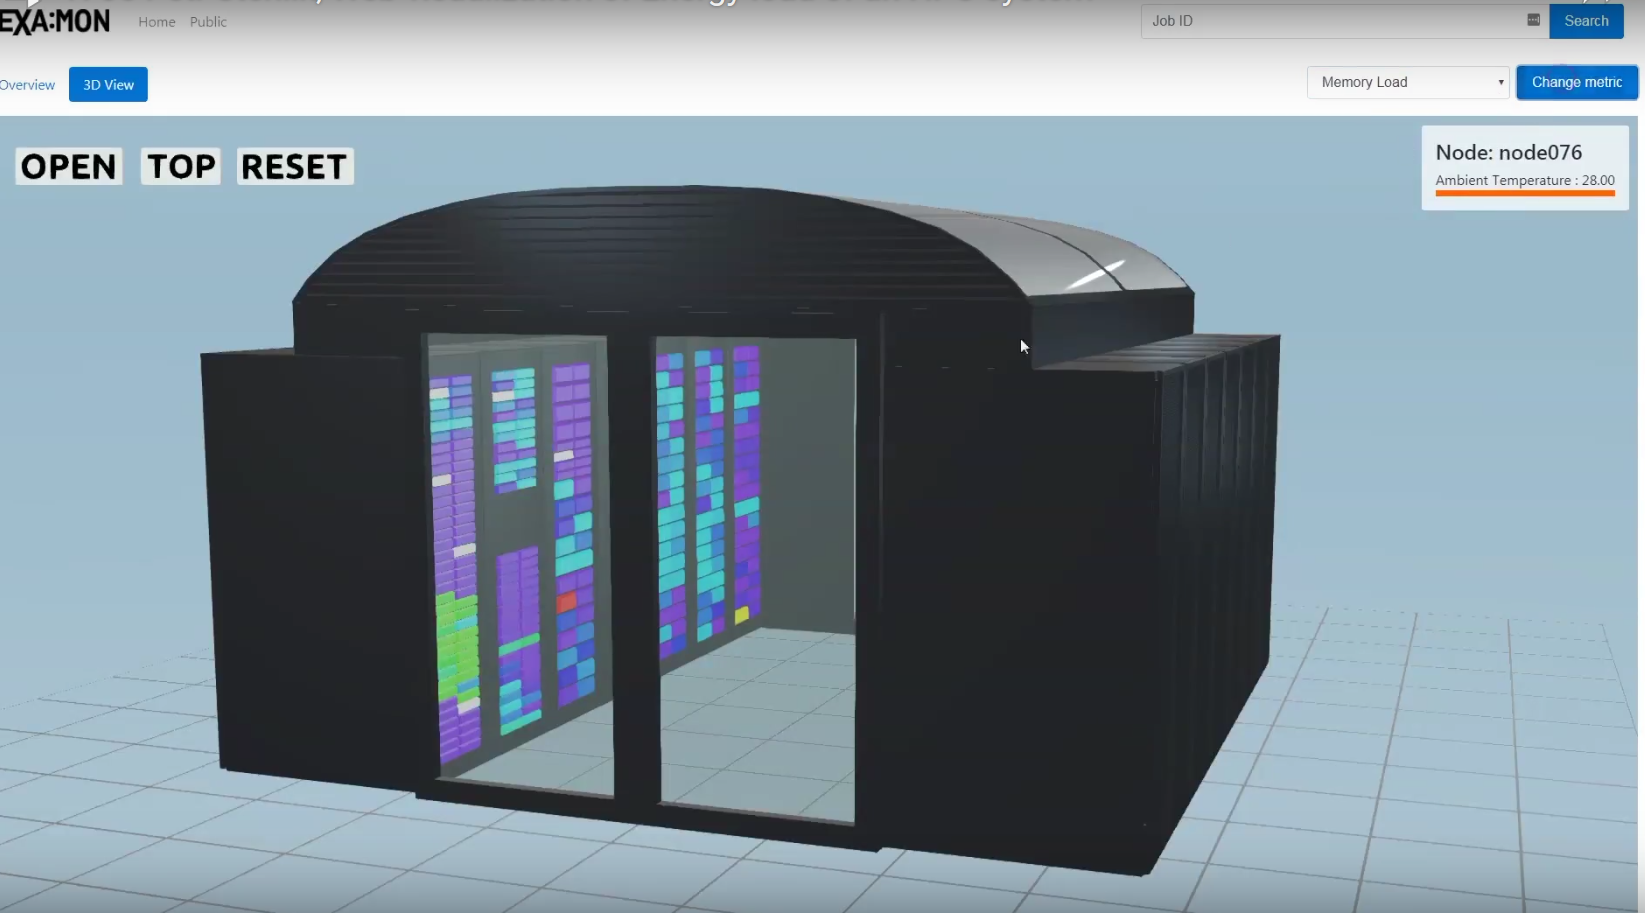 Combining Big-data, AI and 3D visualization for datacentre optimization